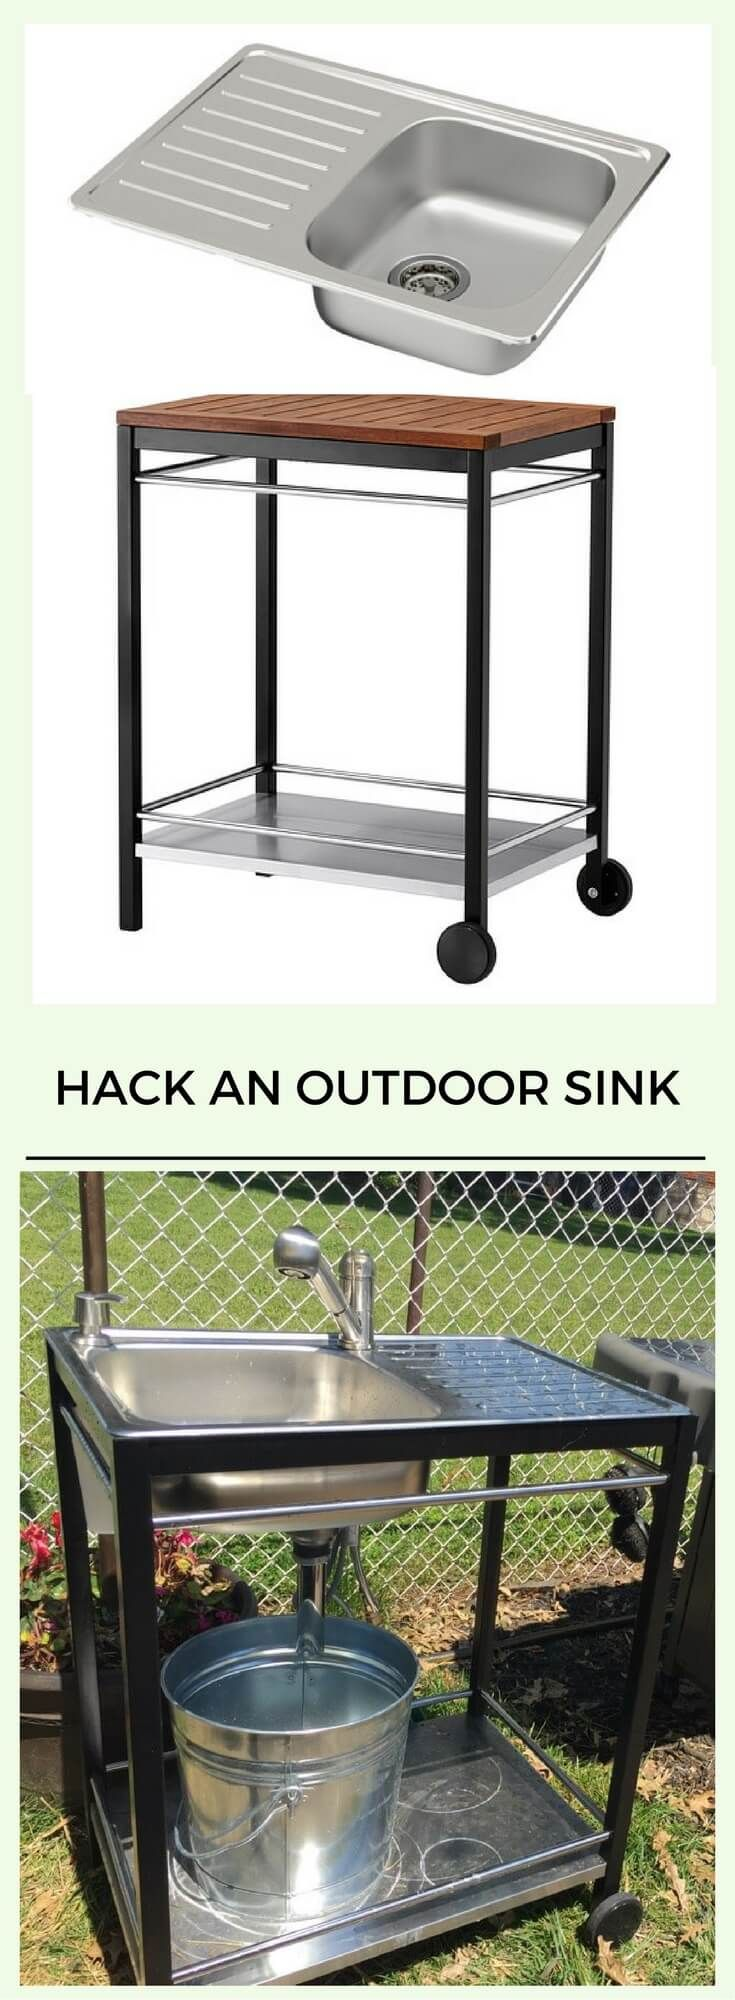 Outdoor sink: A perfect Summer project - IKEA Hackers  Outdoor